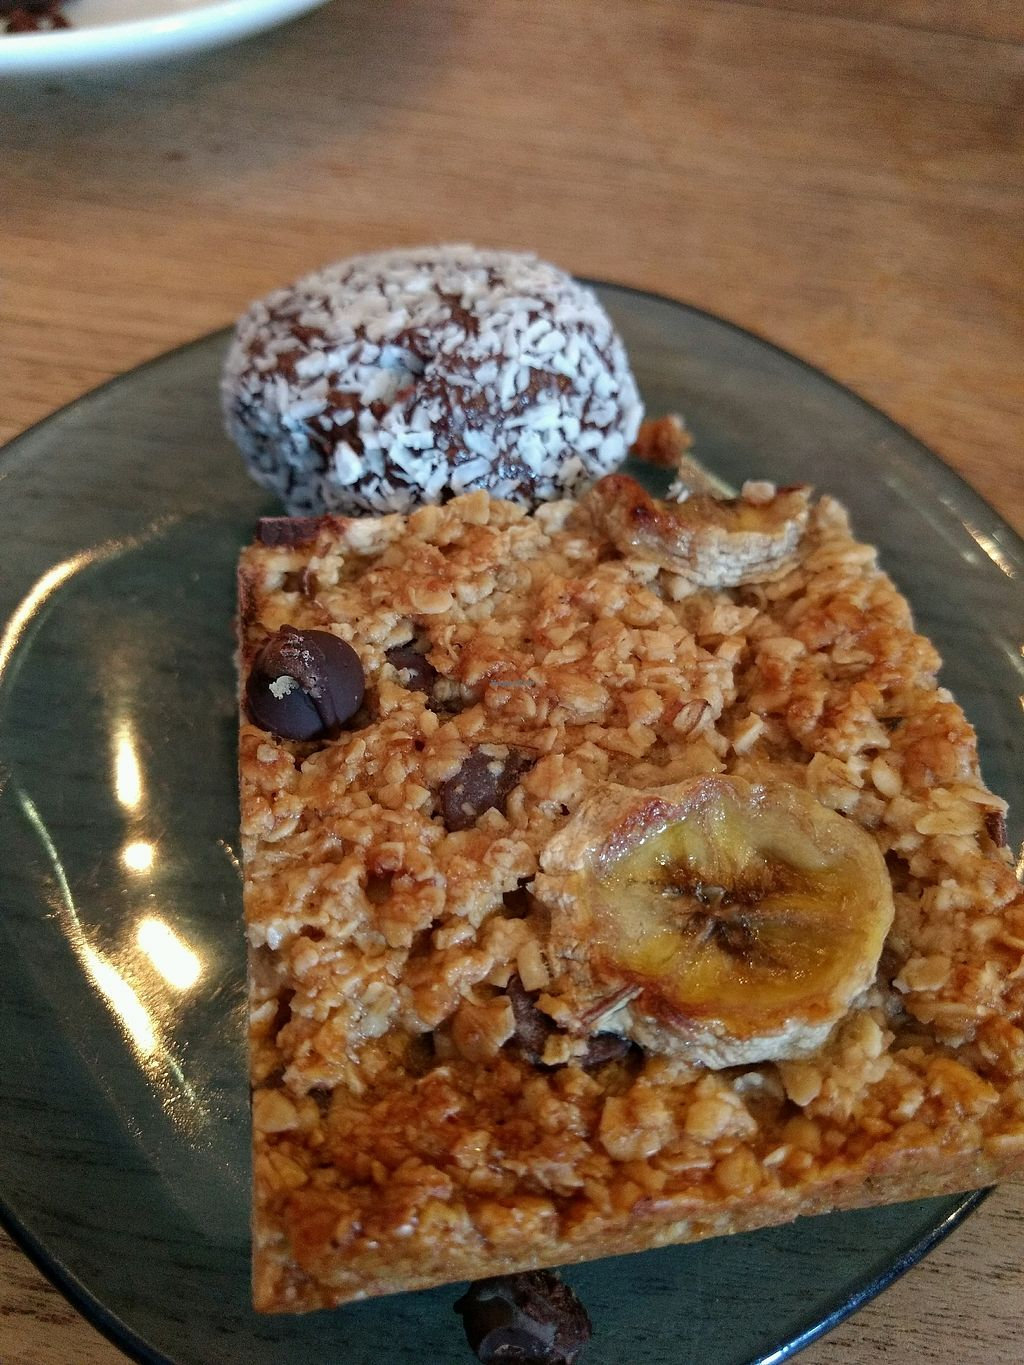 """Photo of The Foodstory Cafe  by <a href=""""/members/profile/craigmc"""">craigmc</a> <br/>more cake <br/> October 4, 2017  - <a href='/contact/abuse/image/45962/311865'>Report</a>"""